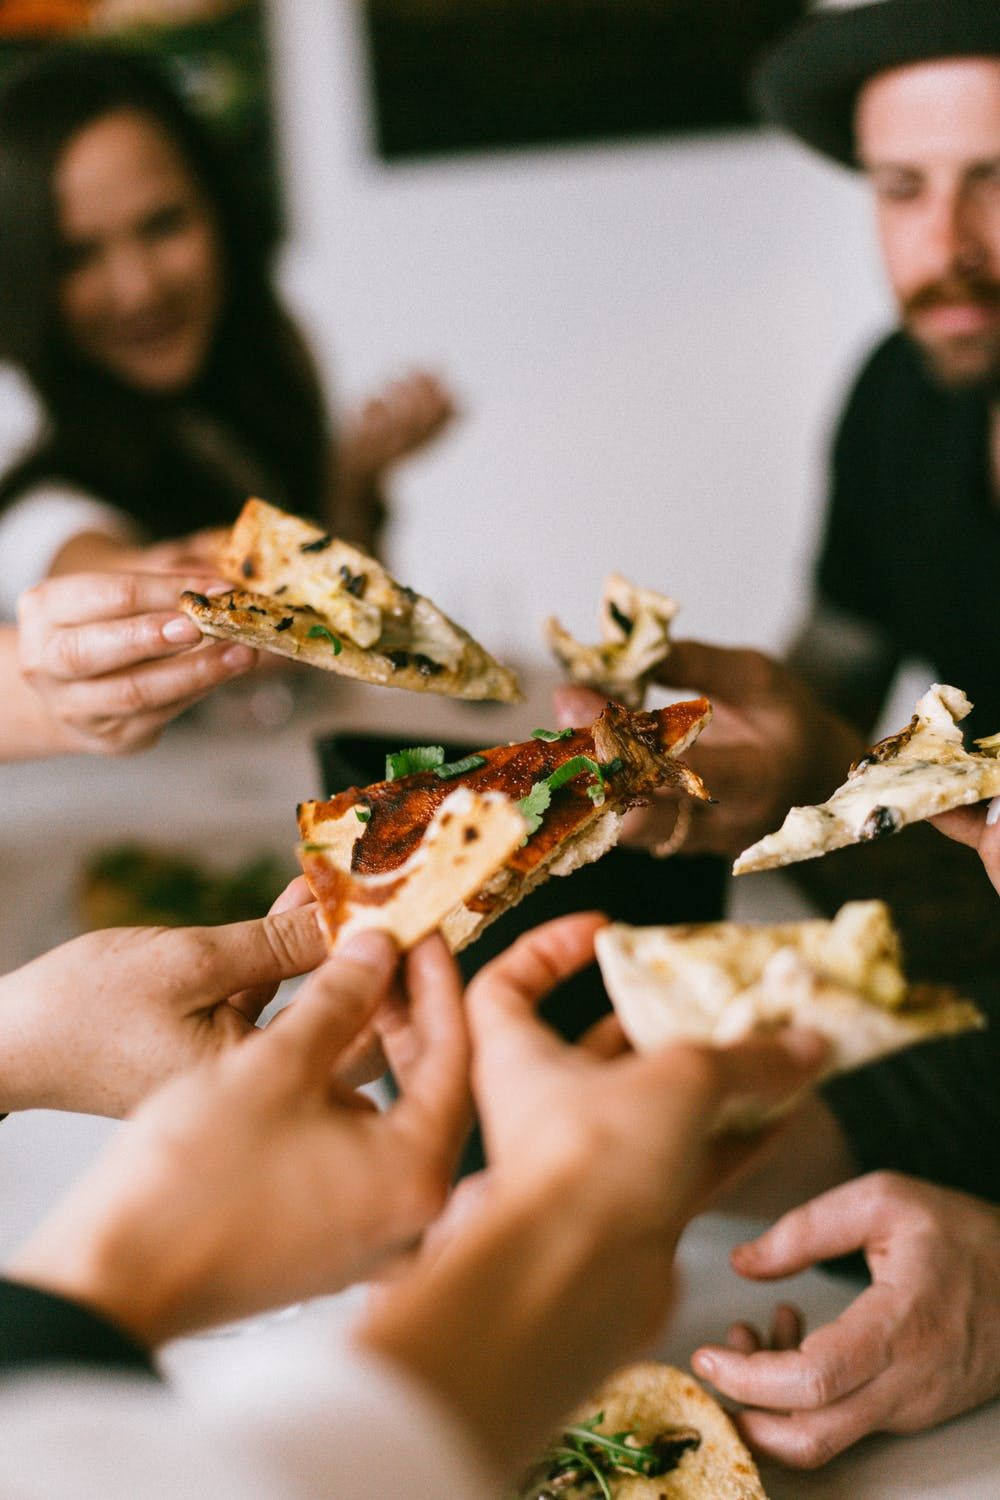 Group of friends sharing slices of pizza